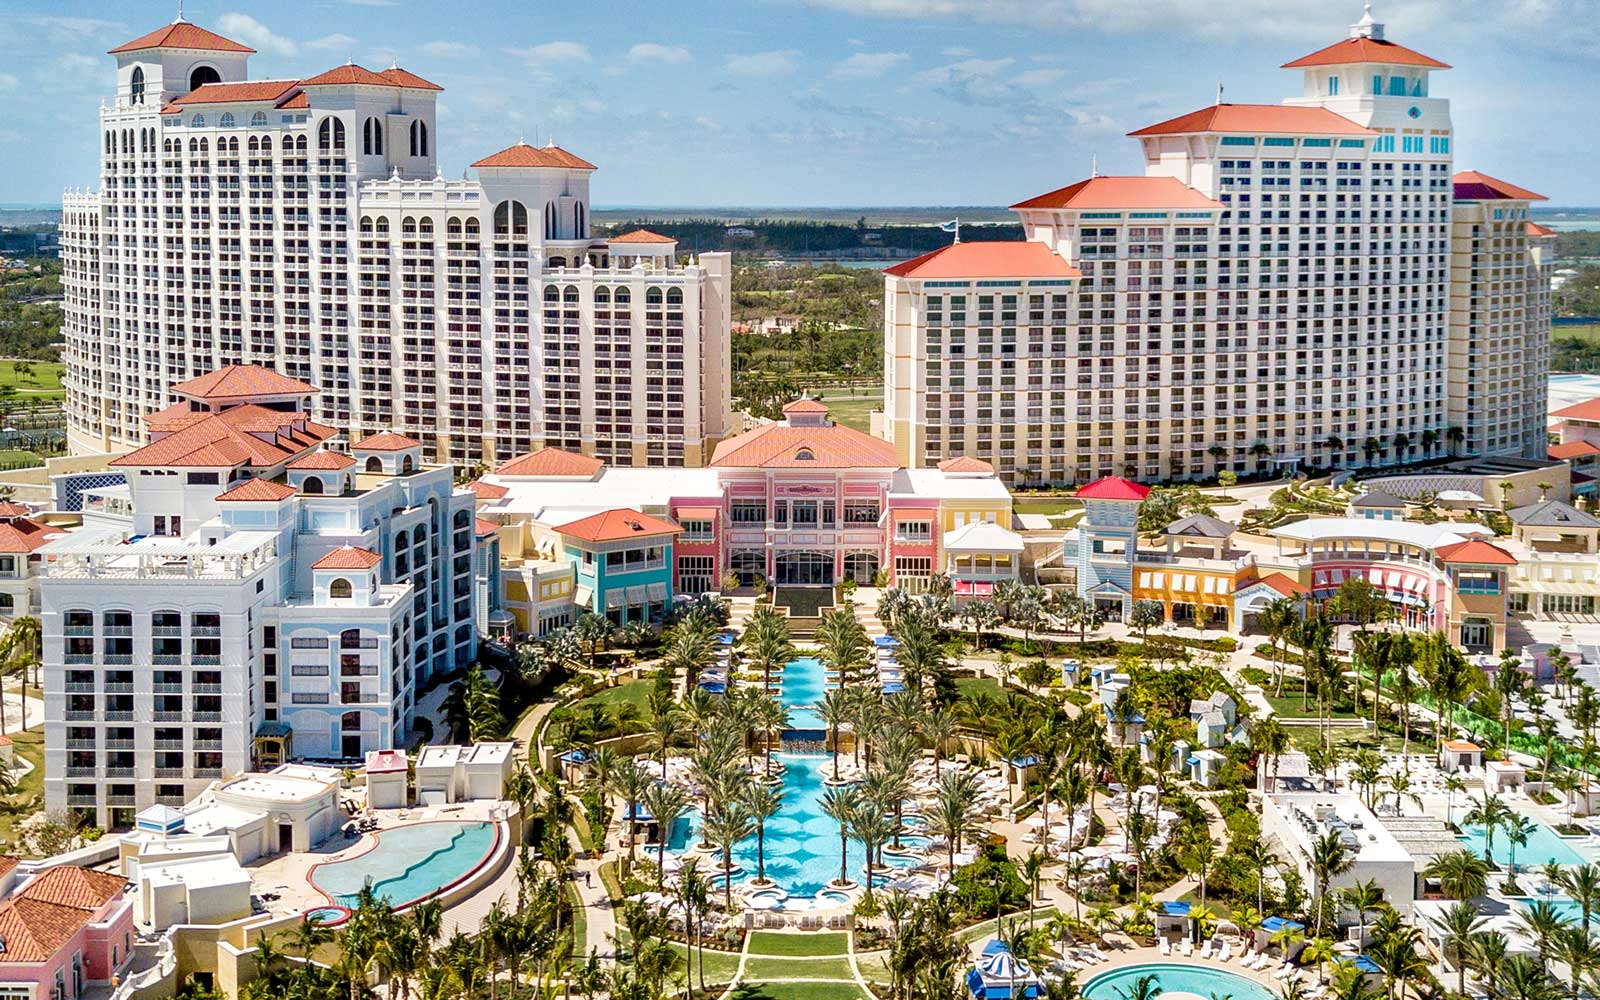 Save 50% off Stays at One of the Hottest New Hotels in the Bahamas